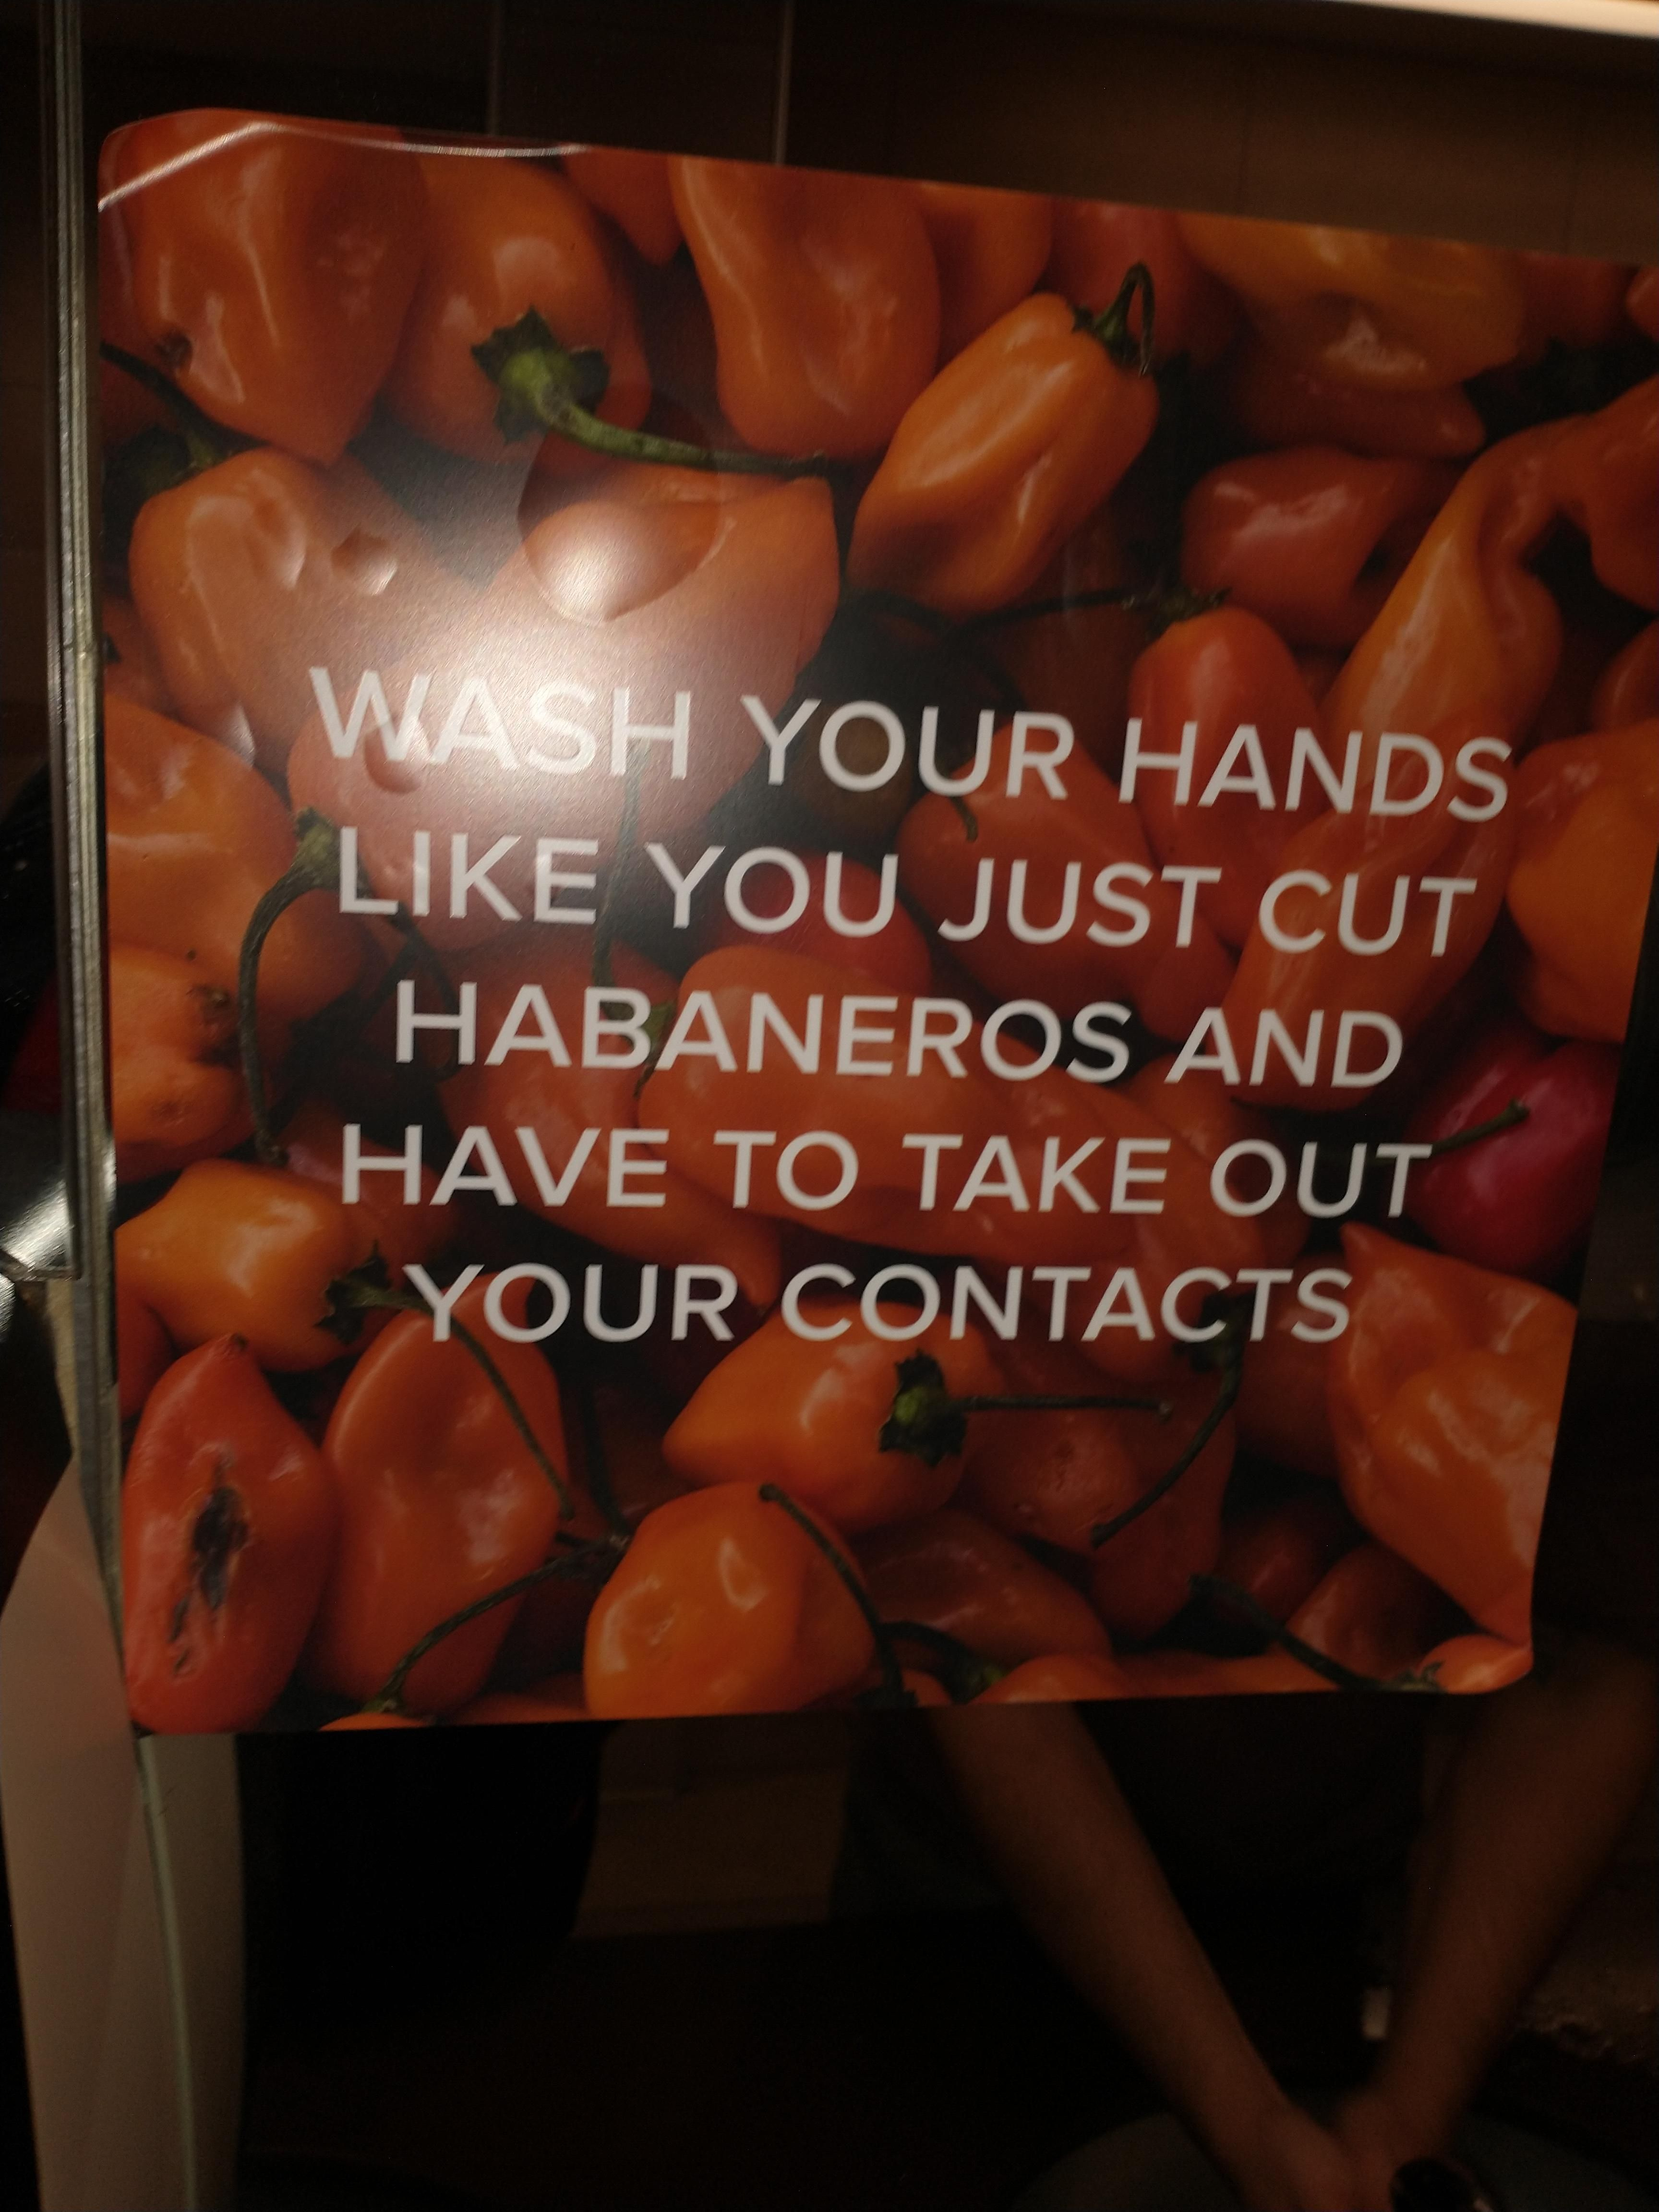 I found this sign in a public restroom and I thought it was funny. Sorry for the bad lighting.